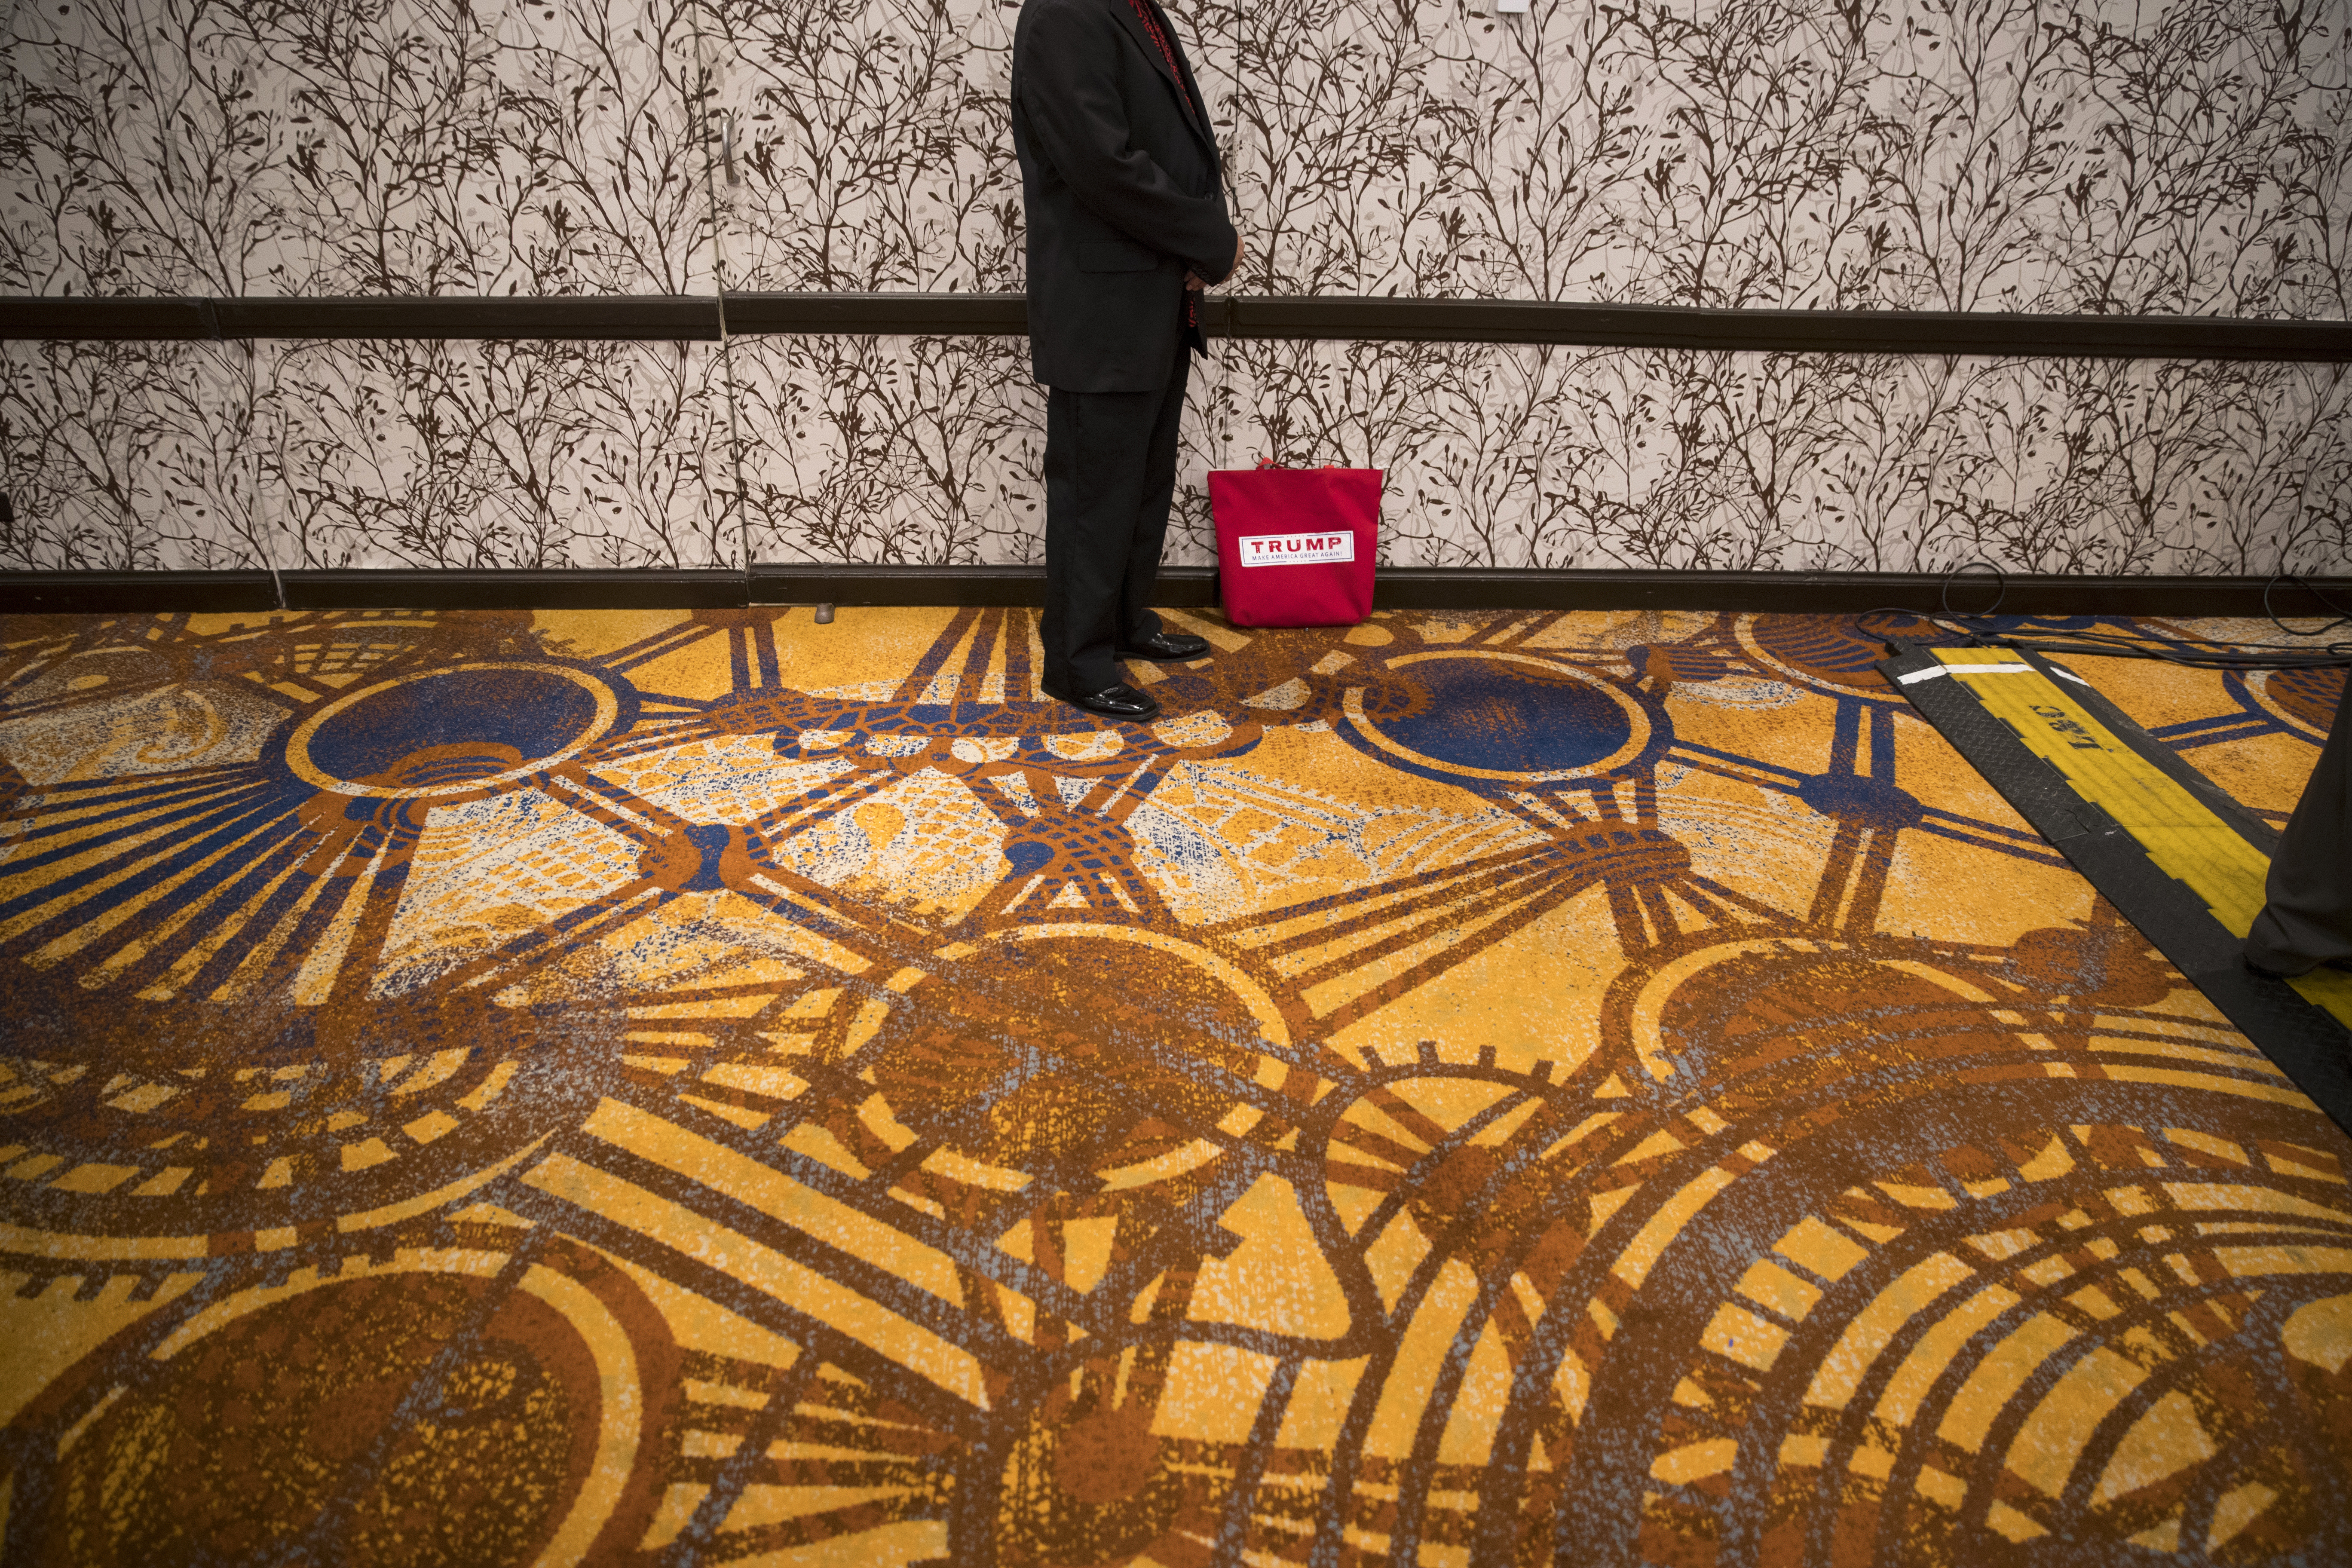 Nathan Paikai, of Honolulu, waits for the arrival of Republican presidential candidate Donald Trump at a reception with friends and family following the Republican National Convention, July 22, 2016, in Cleveland.